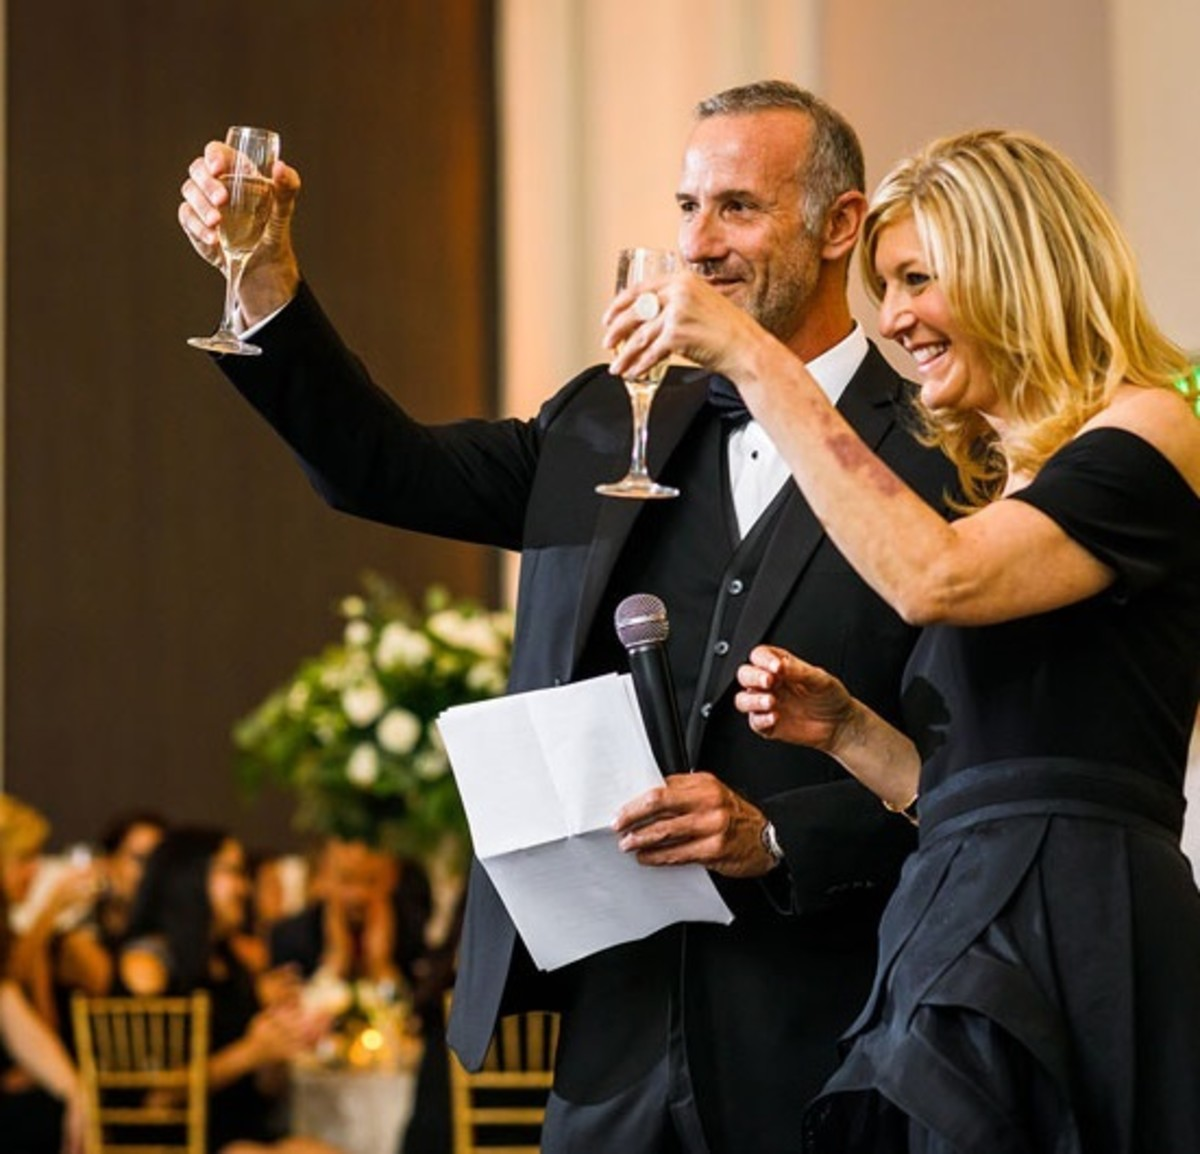 Jewish parents toast their daughter together on her wedding day.